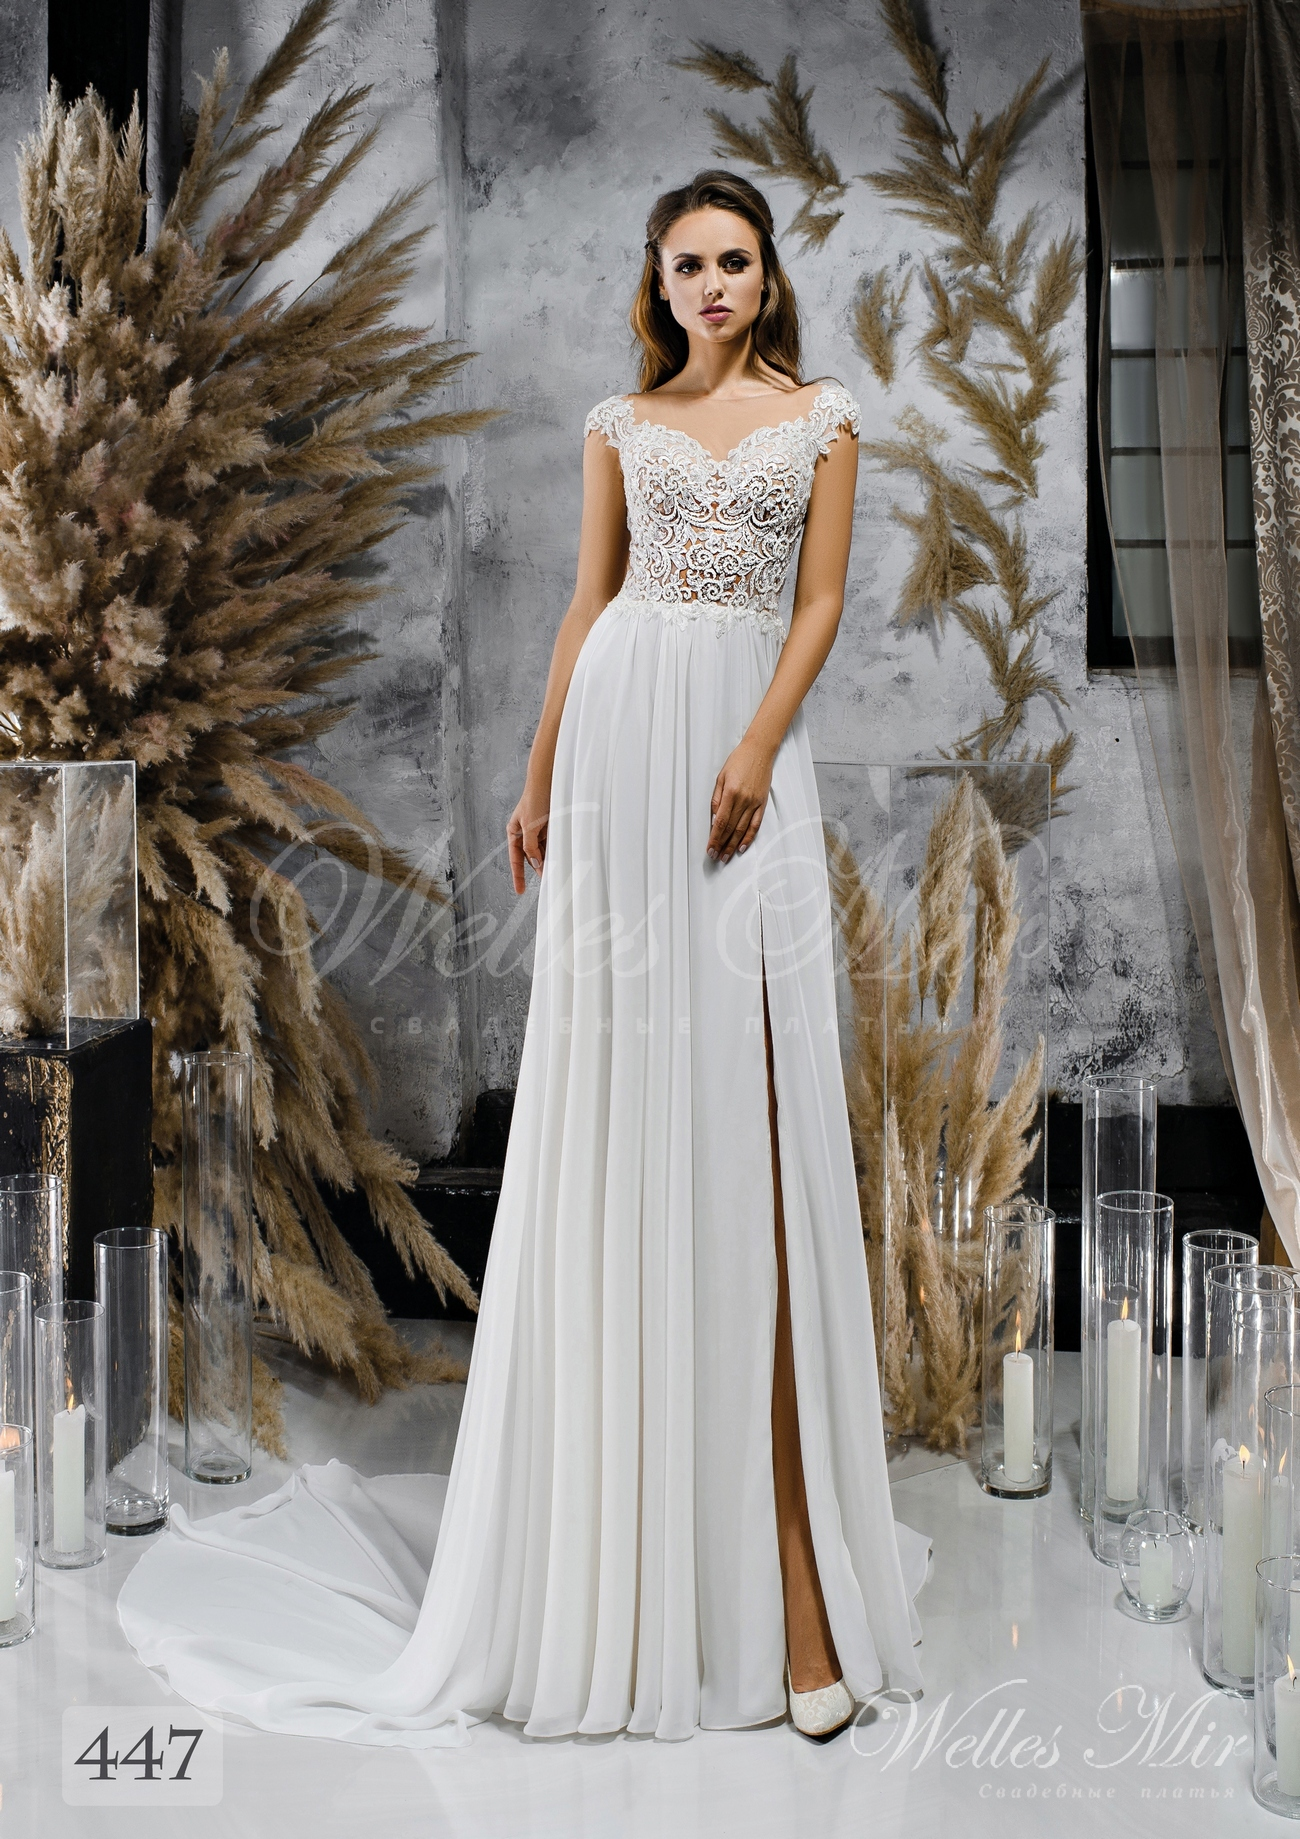 Wedding dresses 447